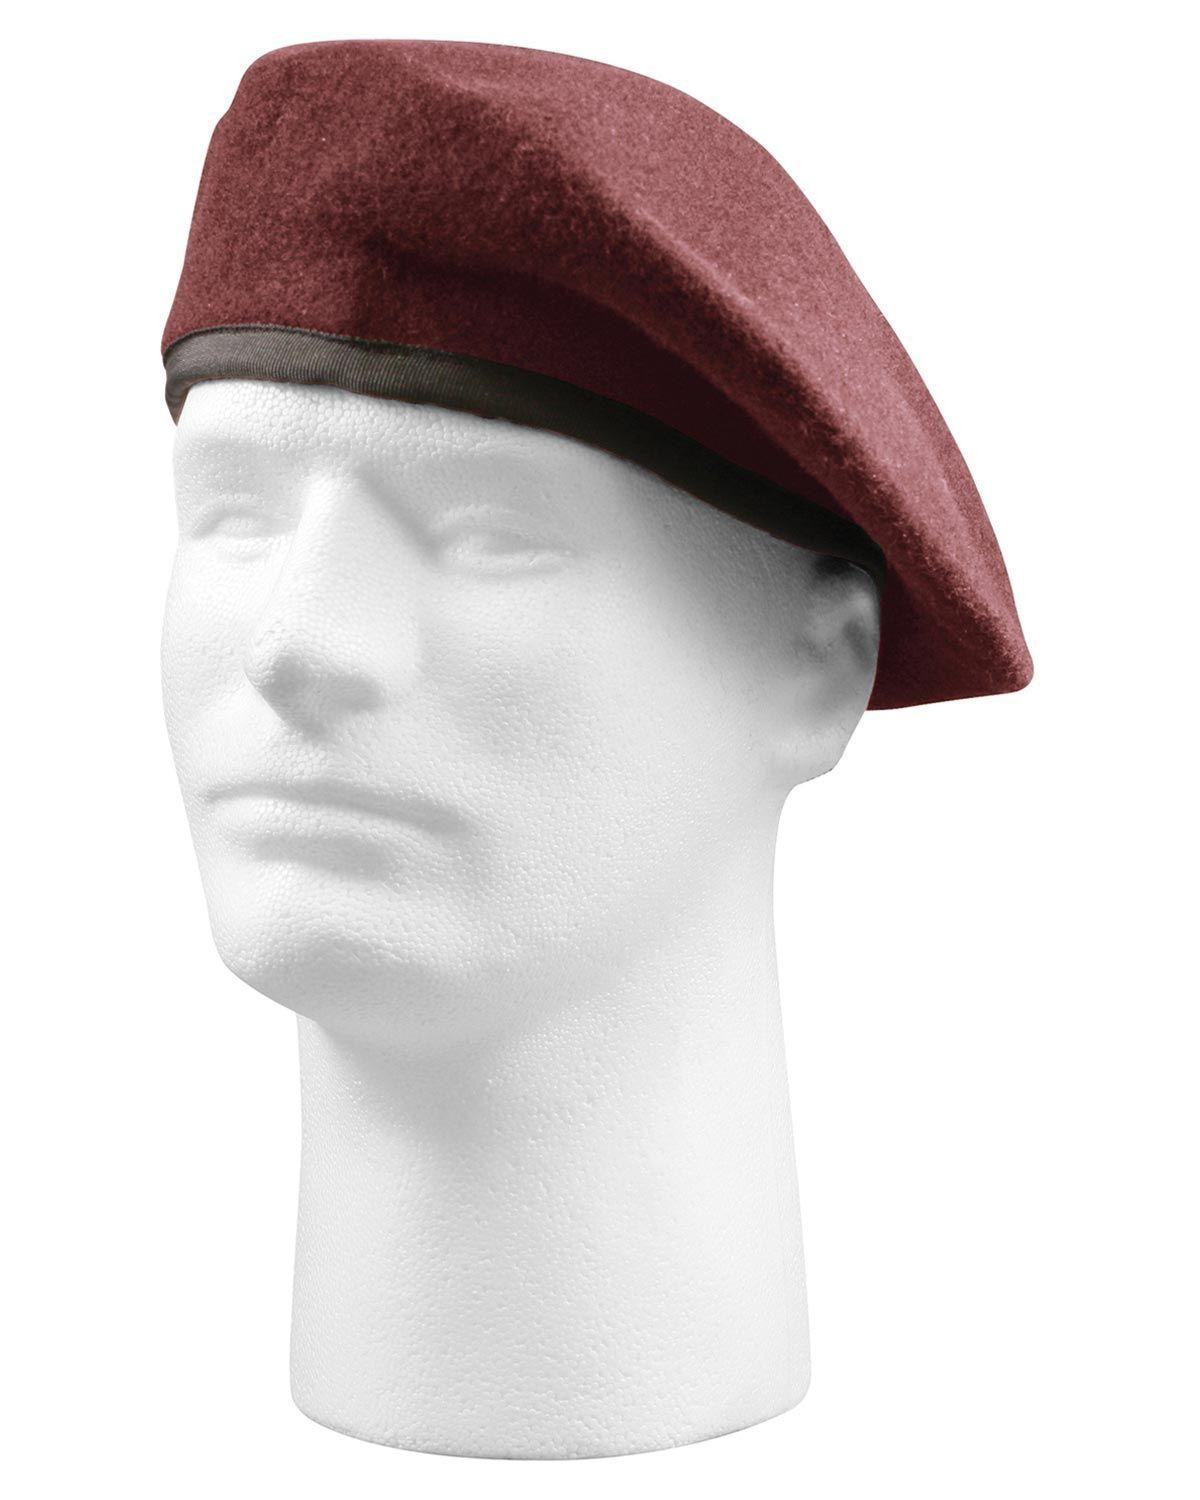 Image of   Rothco Beret - Military Specifications (Maroon, US 7.3/4 / EU 62 cm)